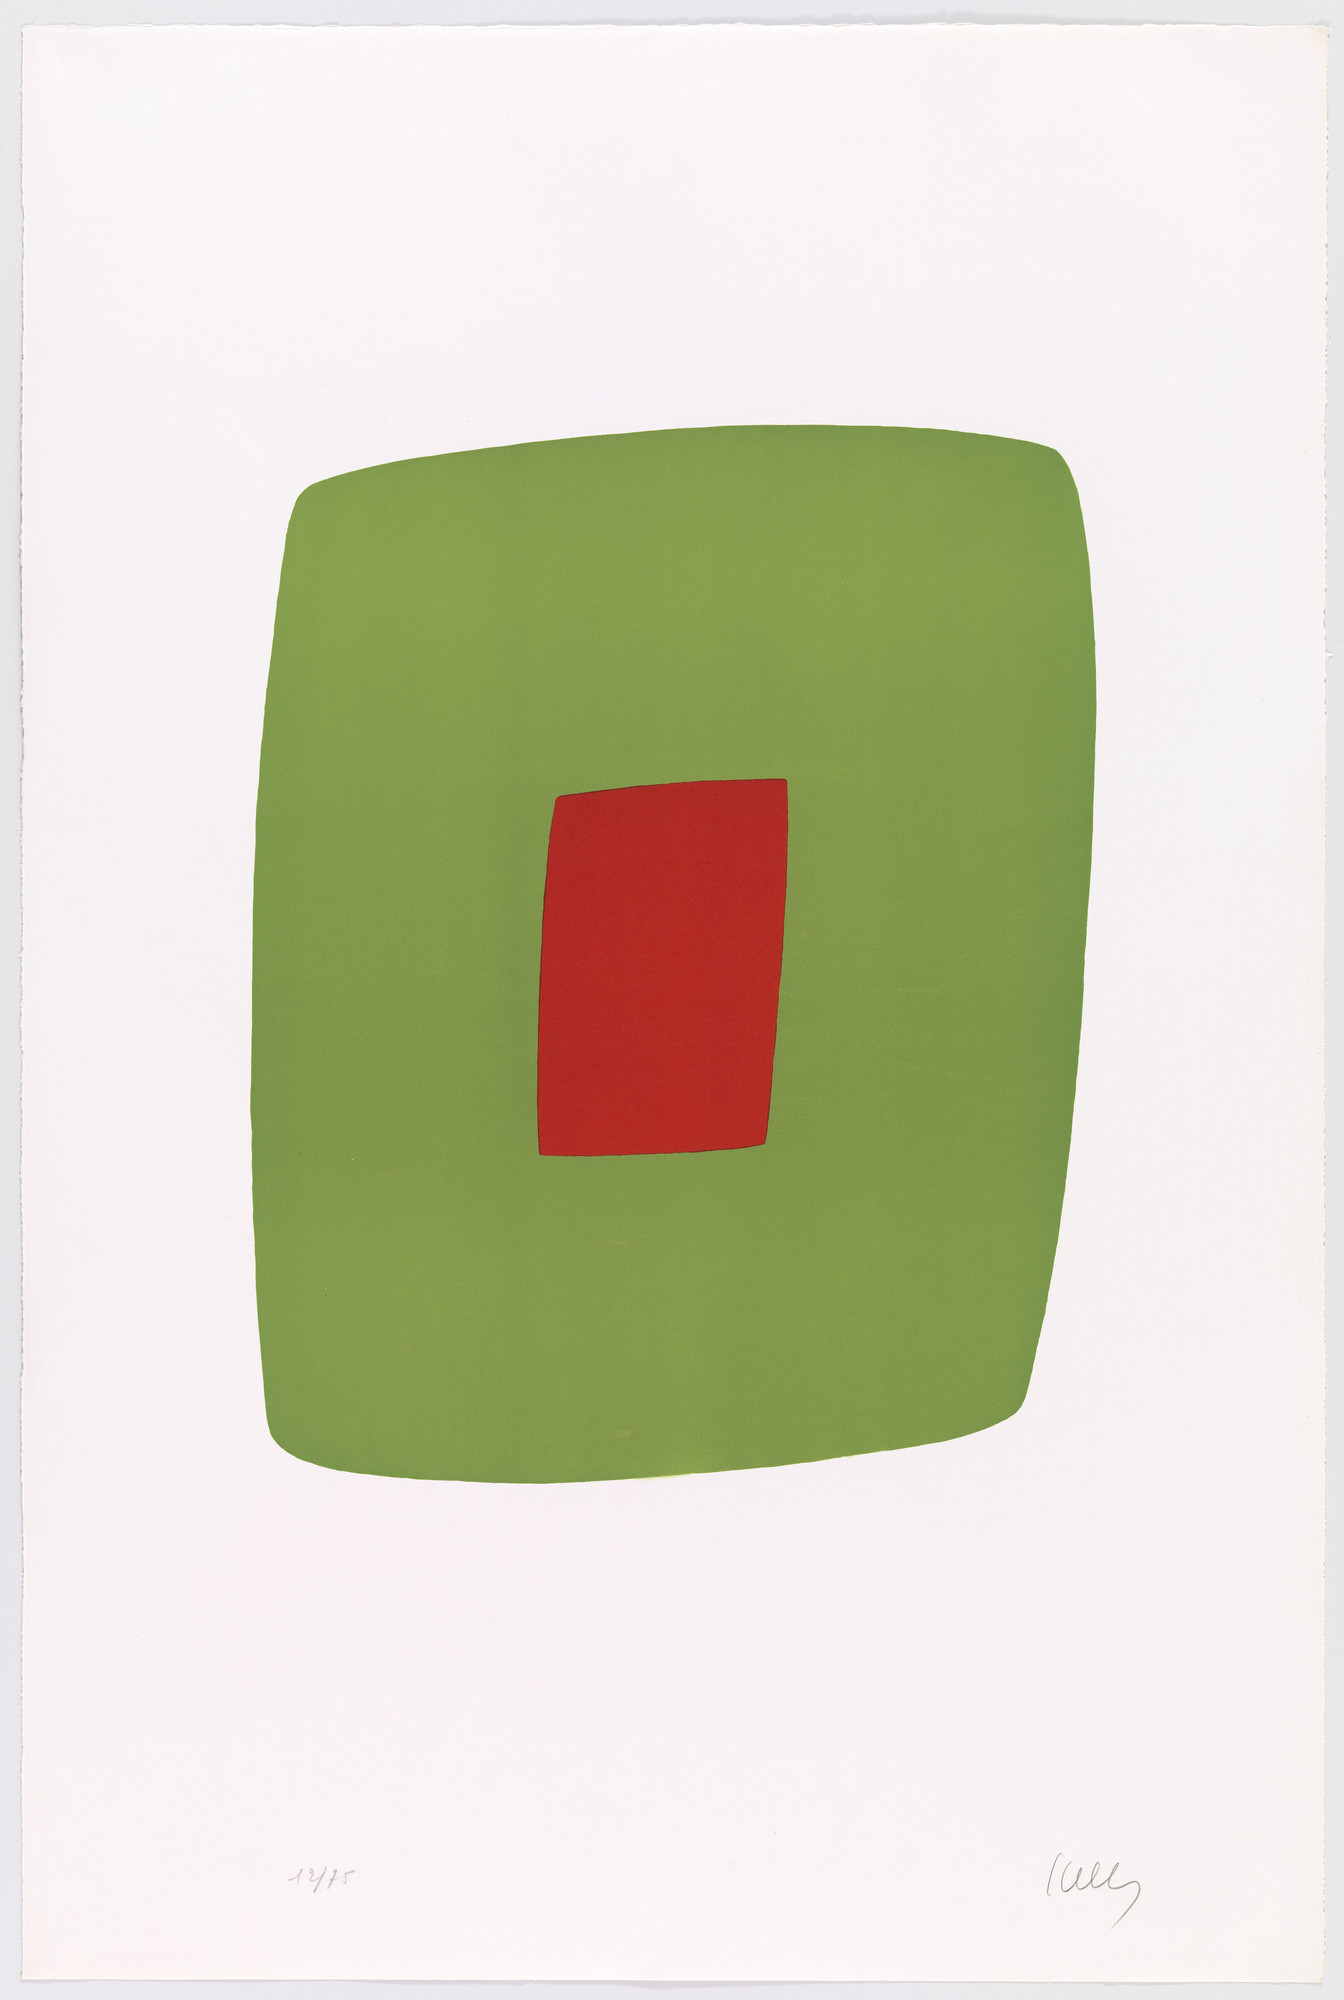 Ellsworth Kelly. Green with Red (Vert avec rouge) from Suite of Twenty-Seven Color Lithographs. 1964–65